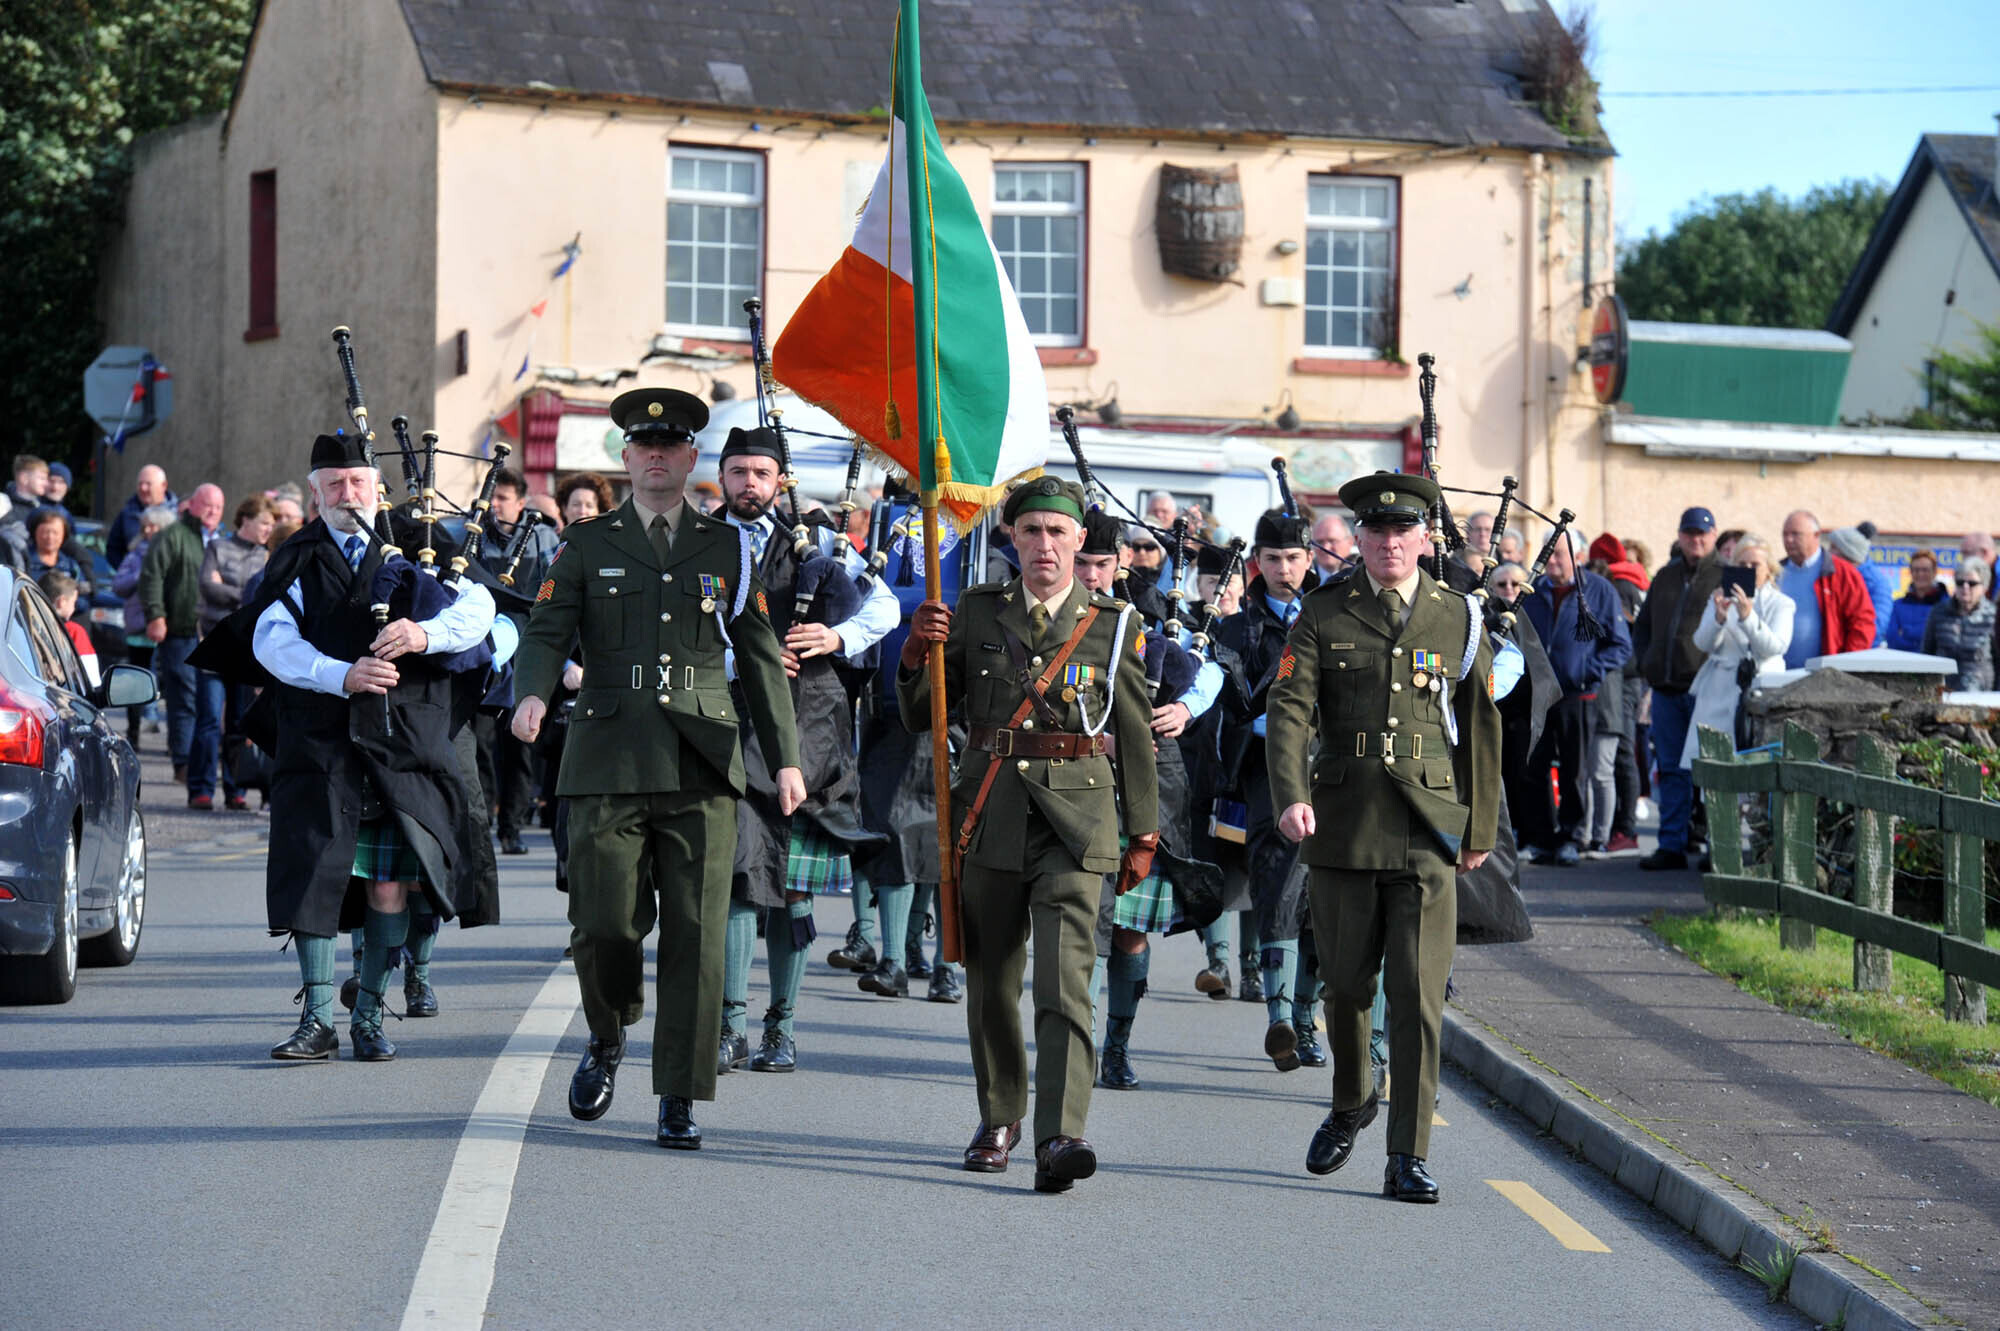 The Tricolour flag is borne by members of the army at the Dripsey Ambush Centenary Anniversary Parade from Dripsey Cross to the ambush site on Sunday 3rd October 2021.